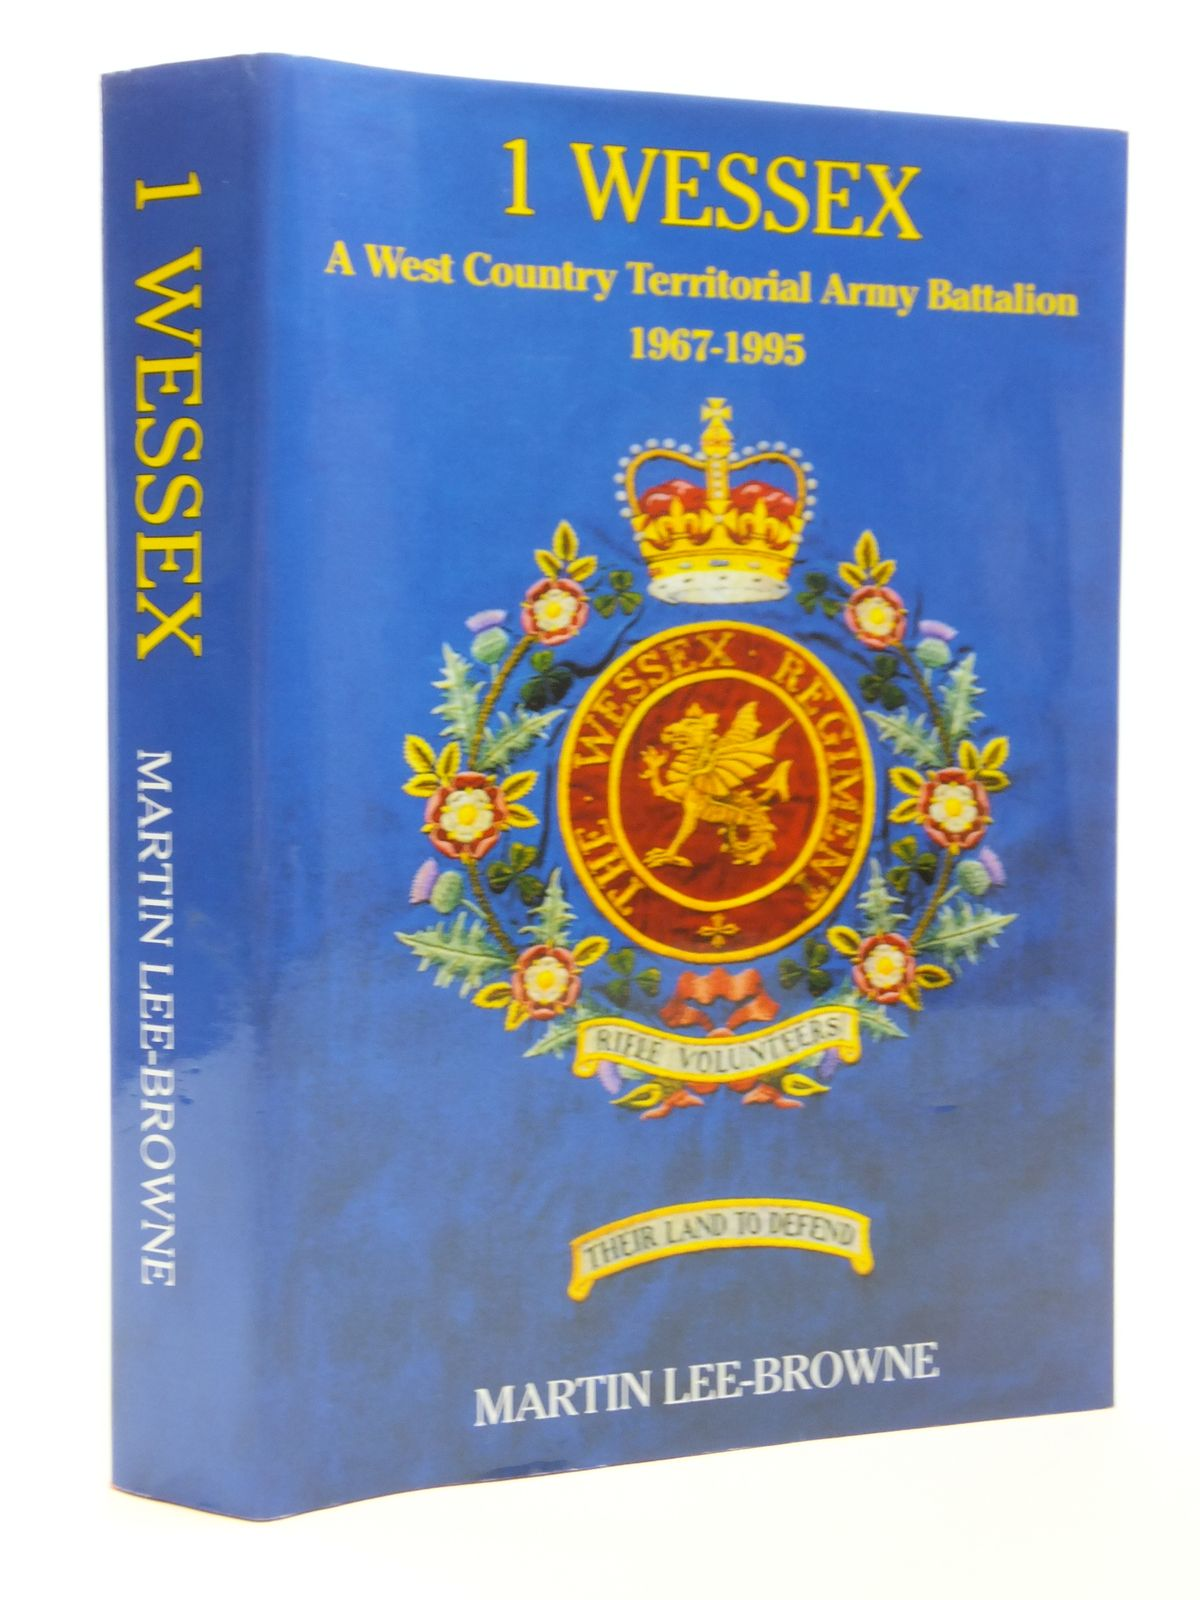 Photo of 1 WESSEX A WEST COUNTRY TERRITORIAL ARMY BATTALION 1967-1995 written by Lee-Browne, Martin published by Chester House Press (STOCK CODE: 1608145)  for sale by Stella & Rose's Books